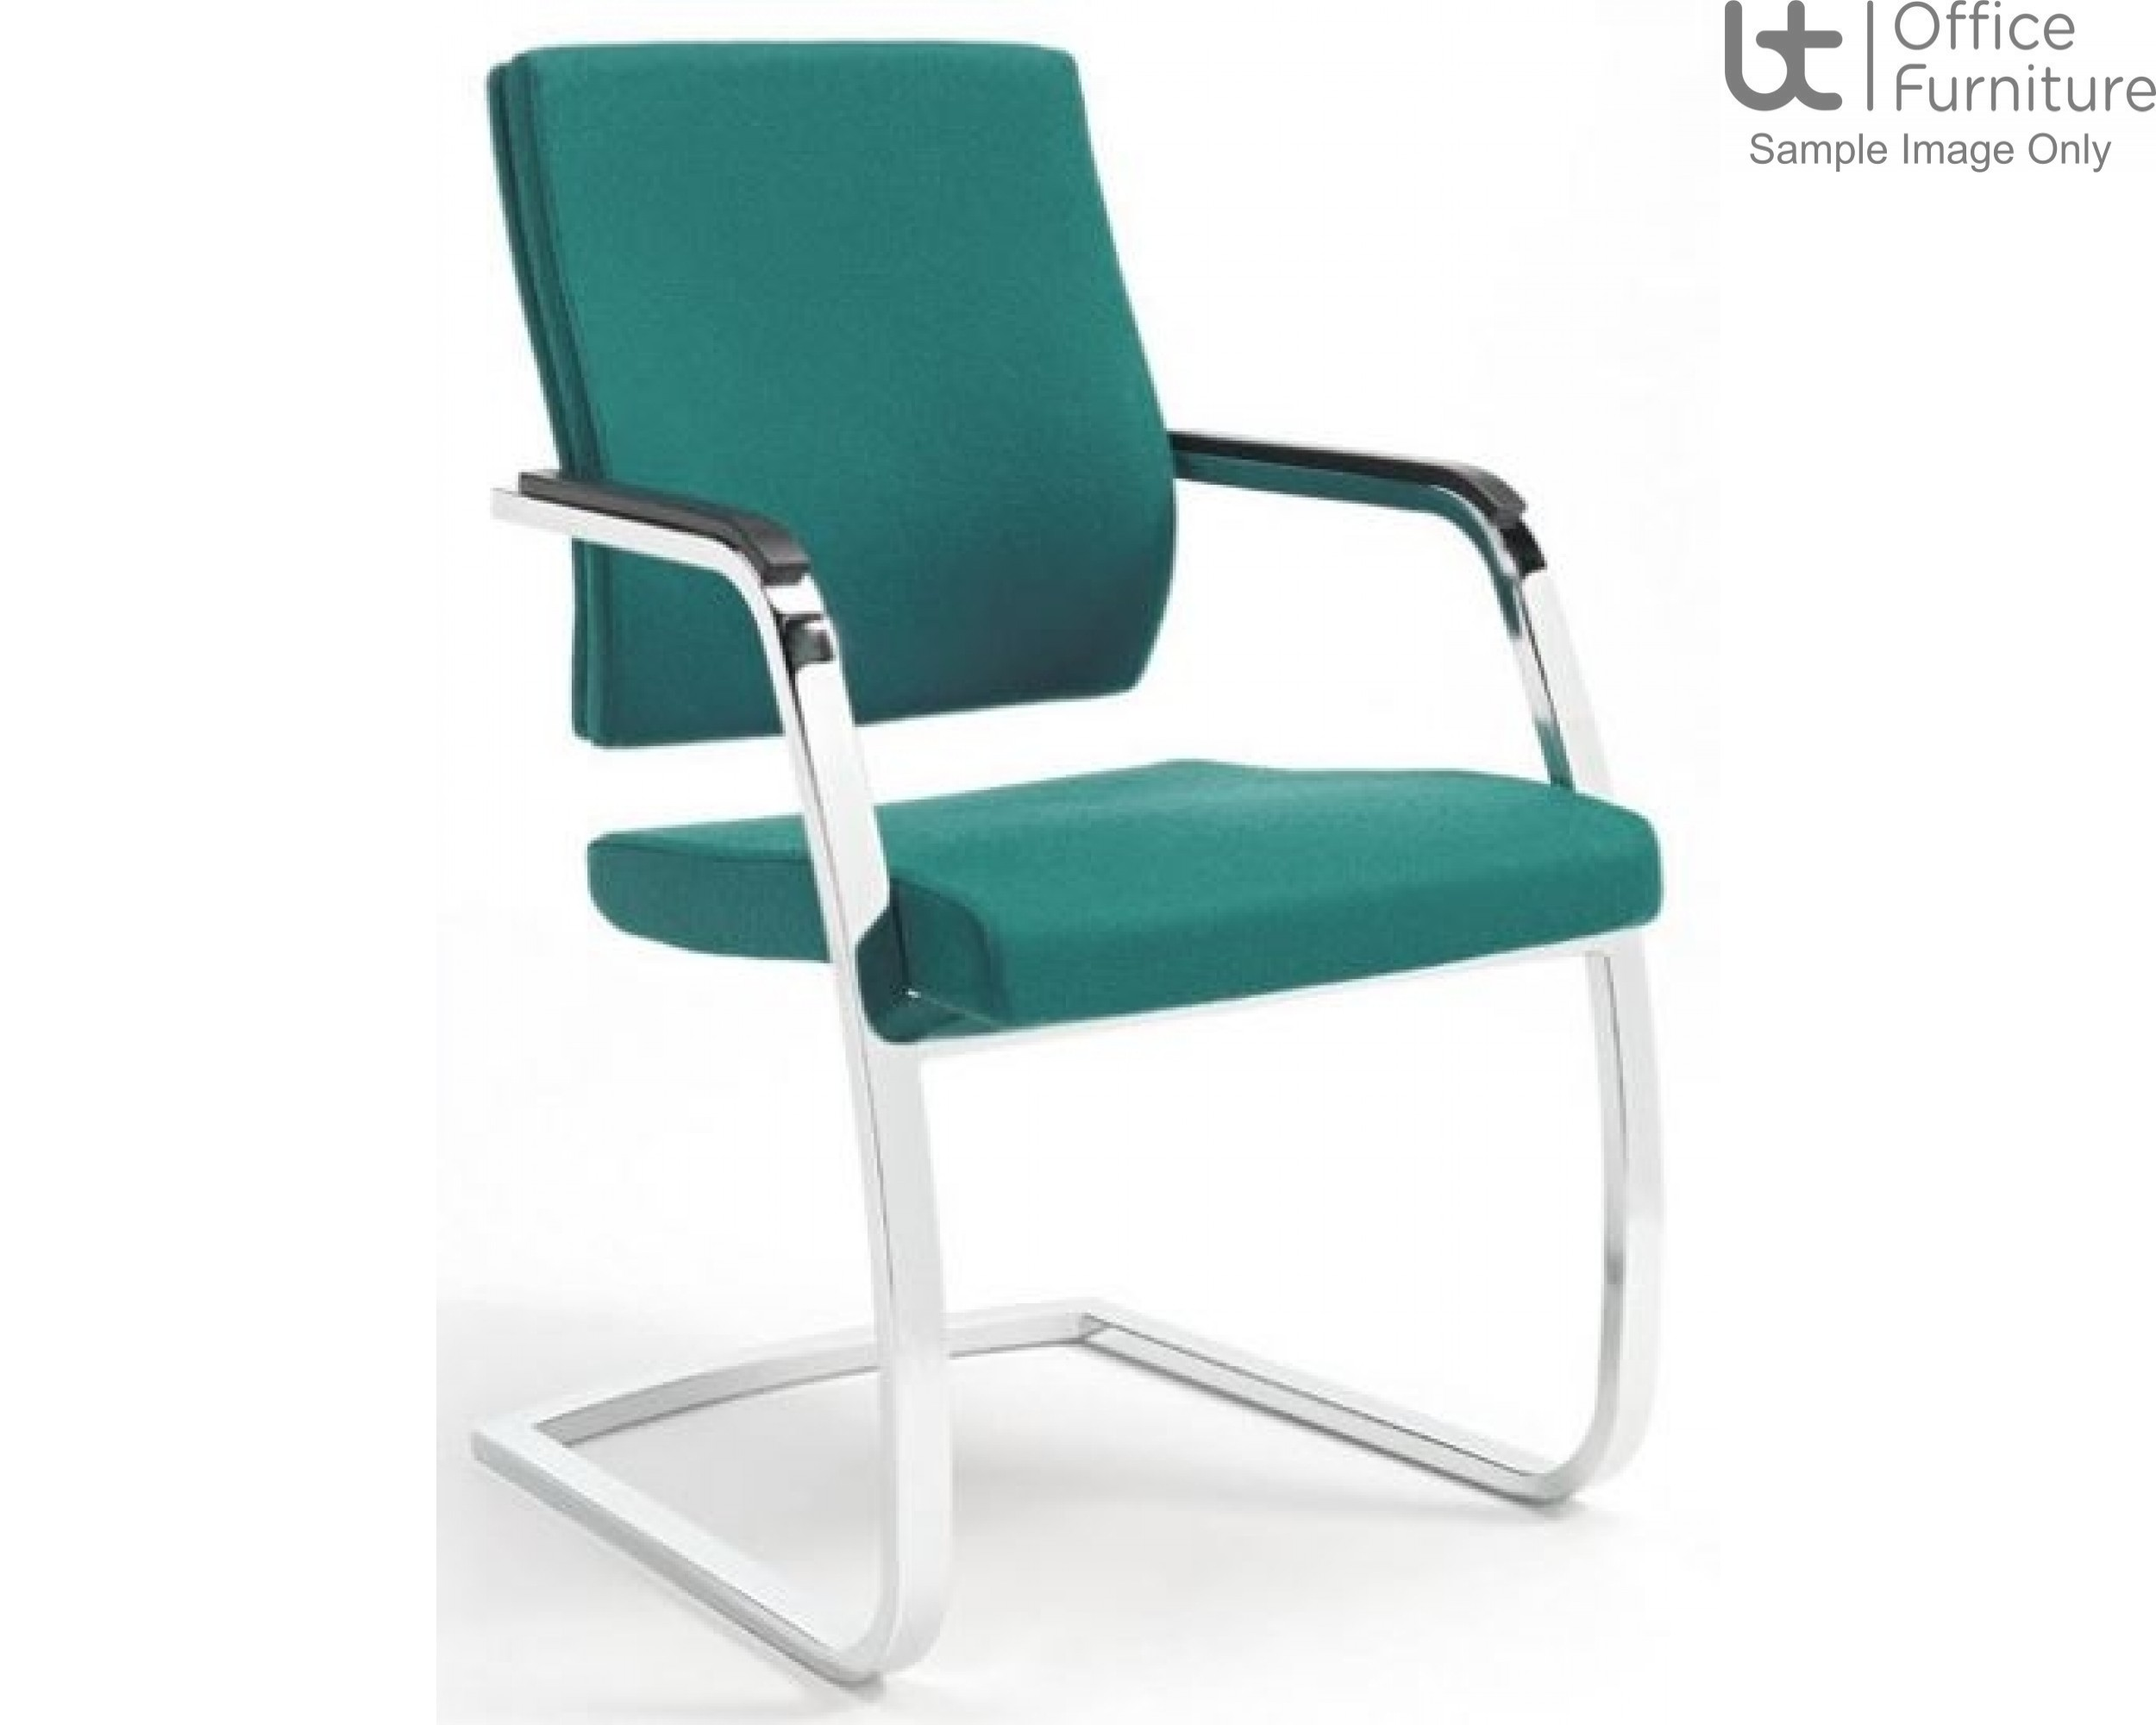 Verco Executive seating - Vibe Show Wood Medium Back Visitor Chair with Arms